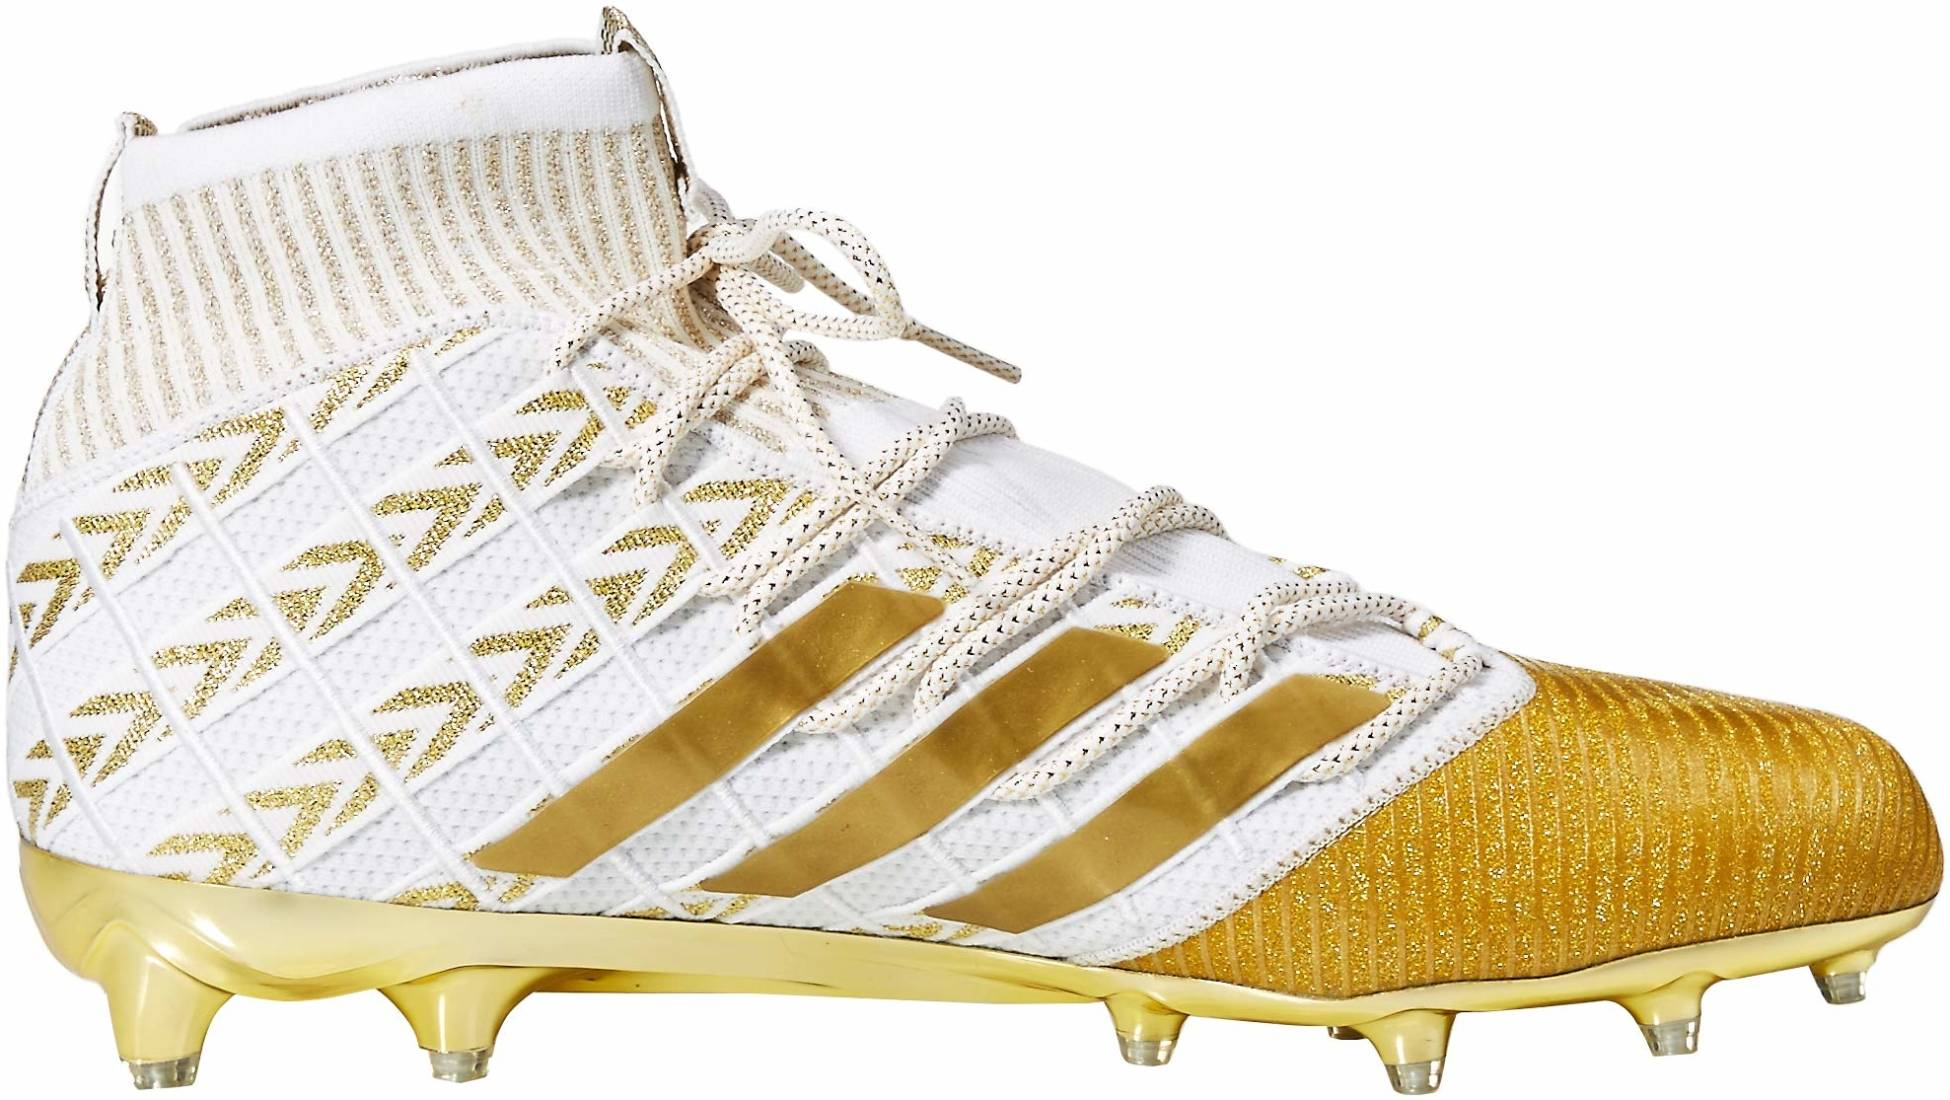 Save 29% on Gold Football Cleats (2